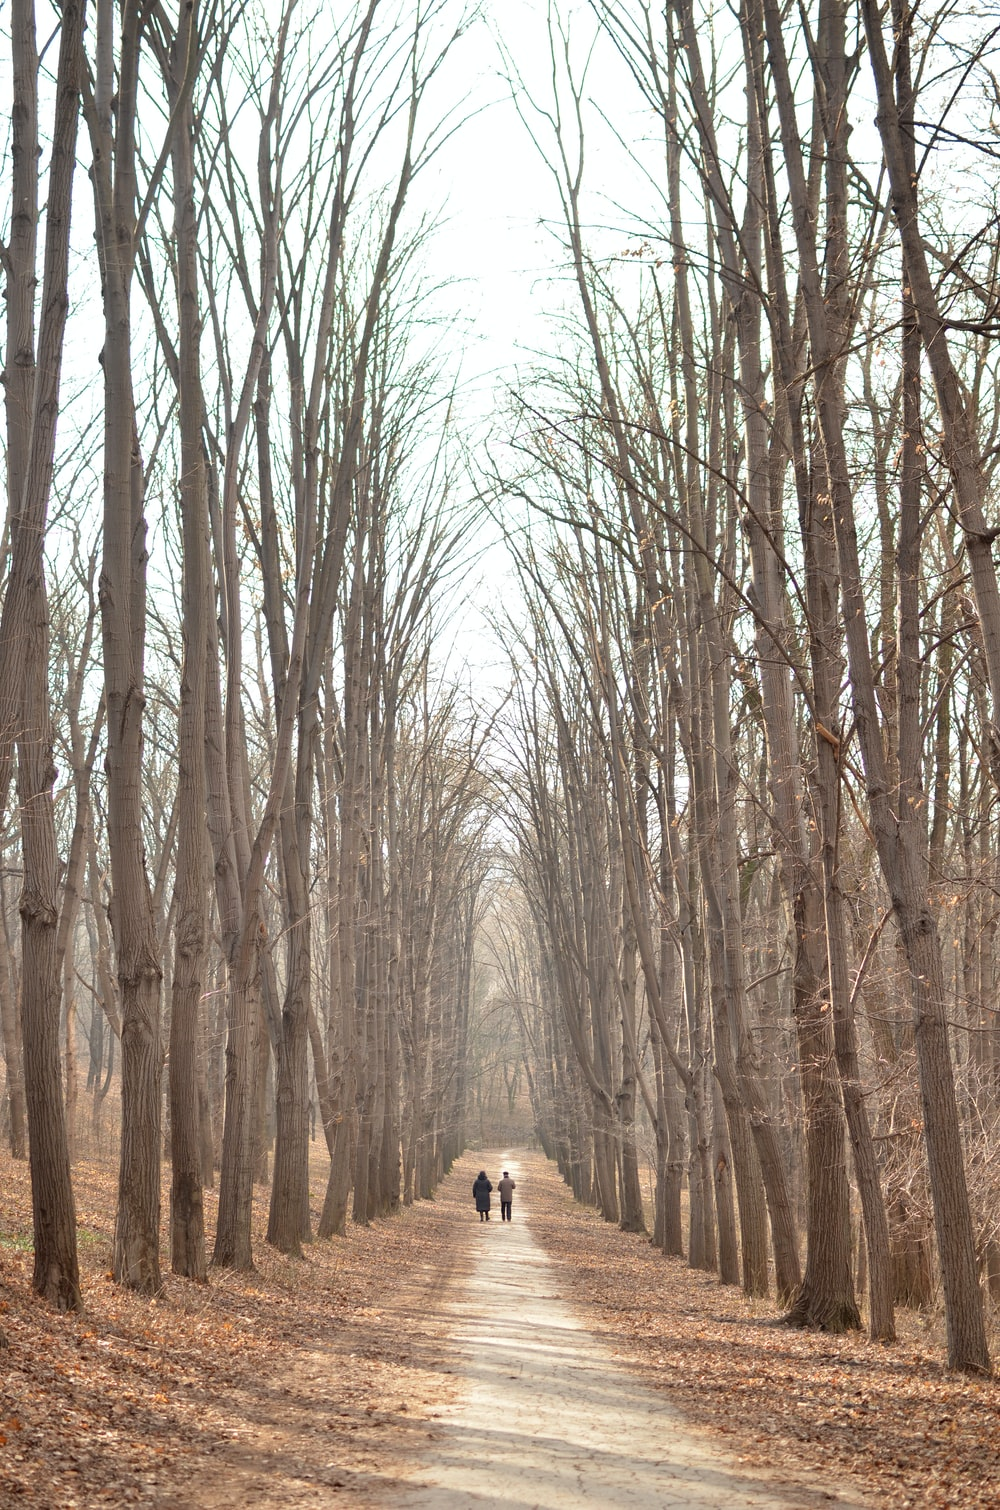 two people walking on road between bare trees during daytime